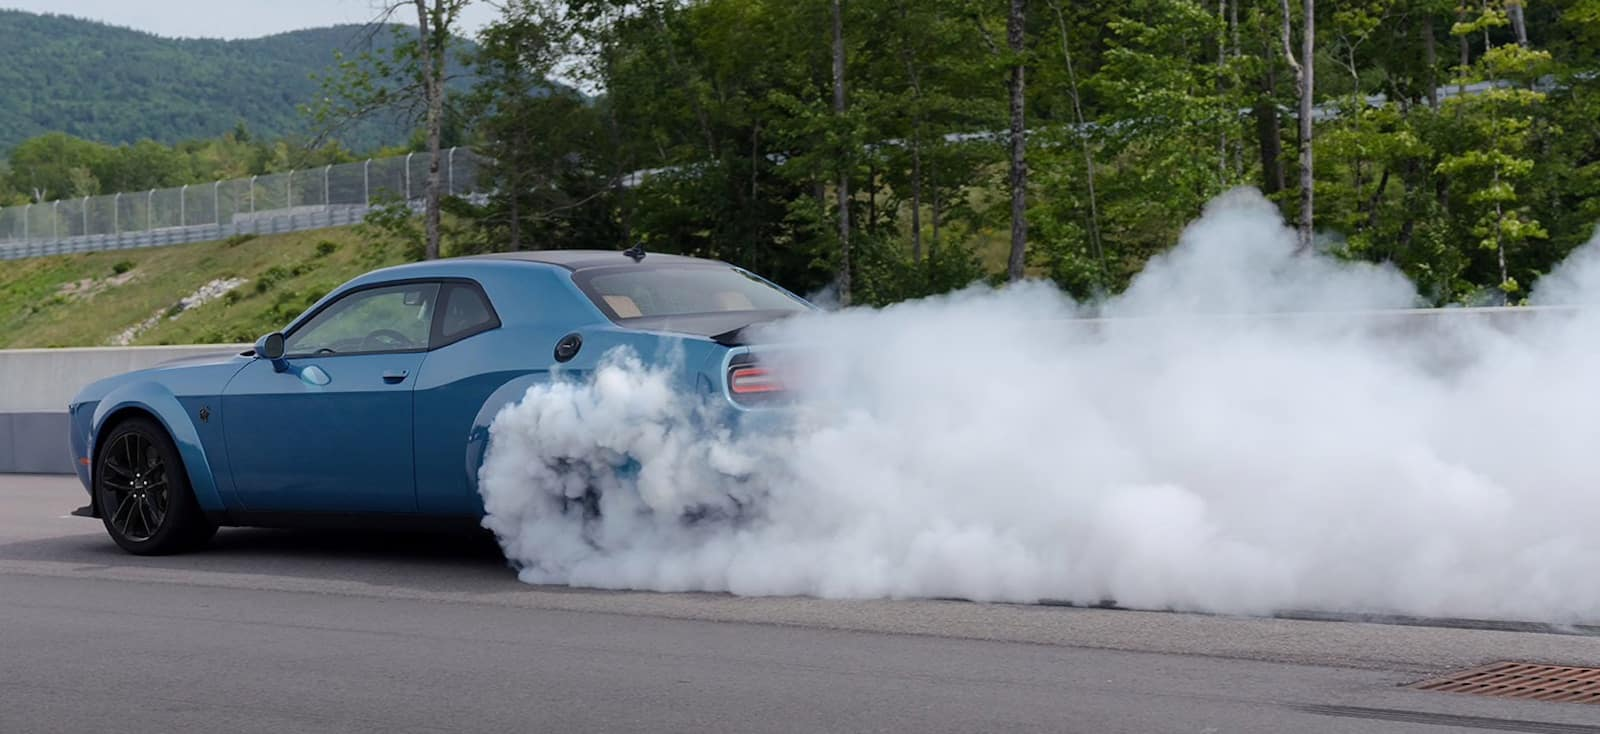 2021 Dodge Challenger safety and security features